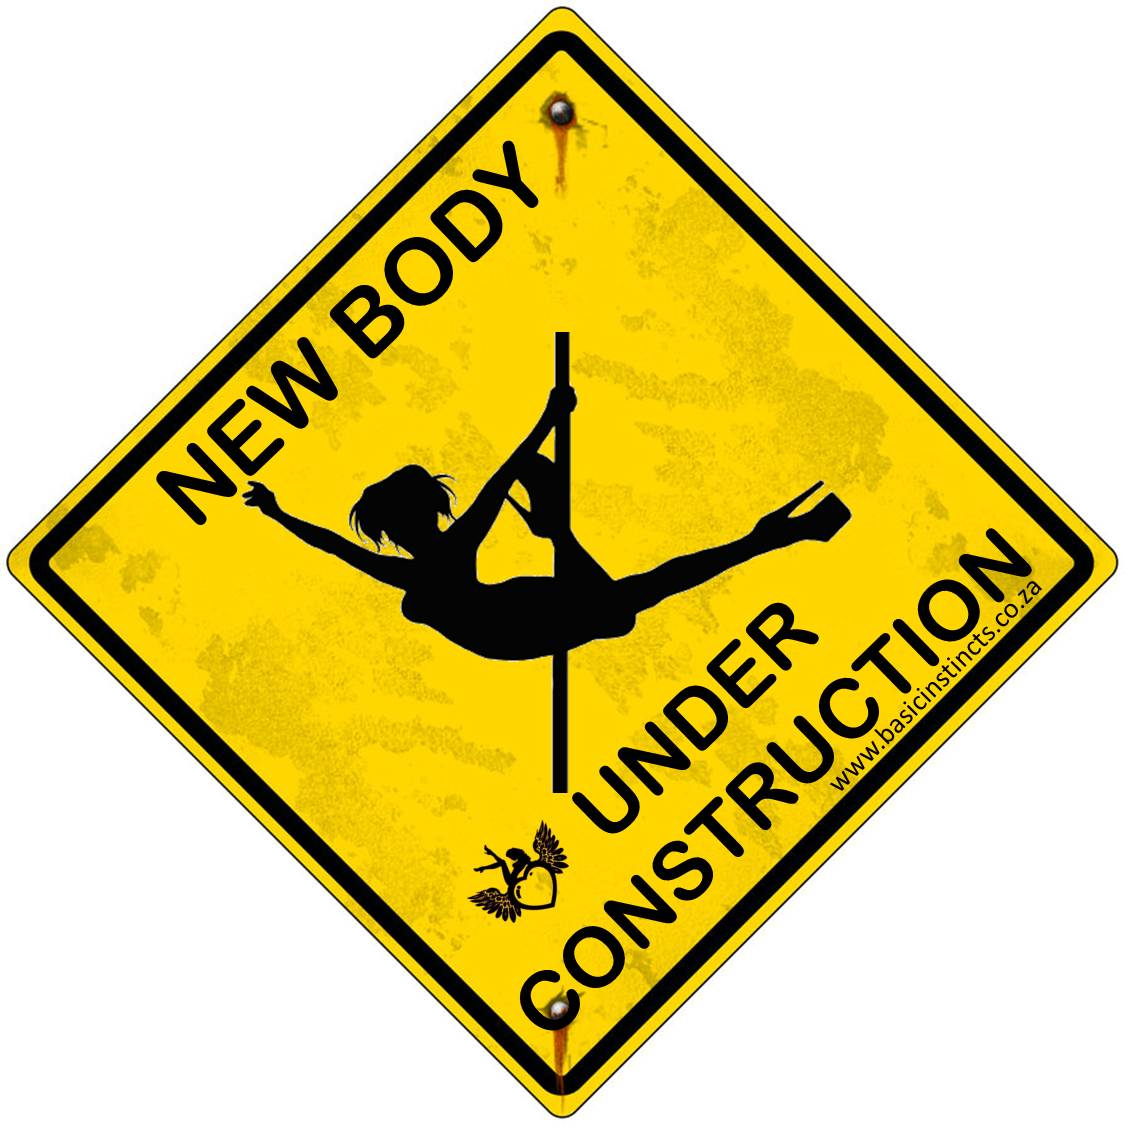 New body currently under construction clipart.